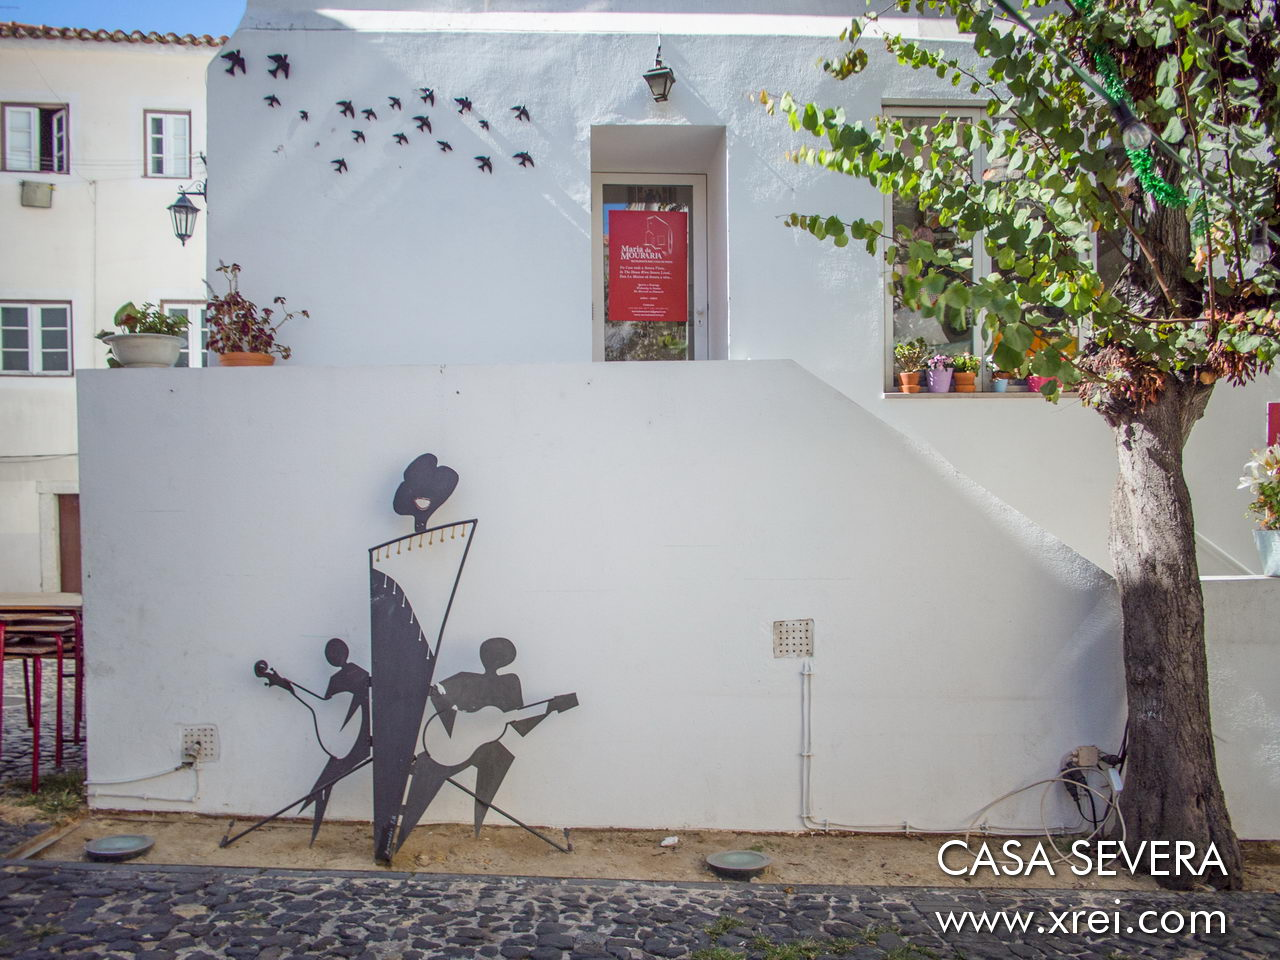 Casa da Severa is an extension of the Fado Museum, where you can listen to fado and get to know the life of Maria Severa Onofriana